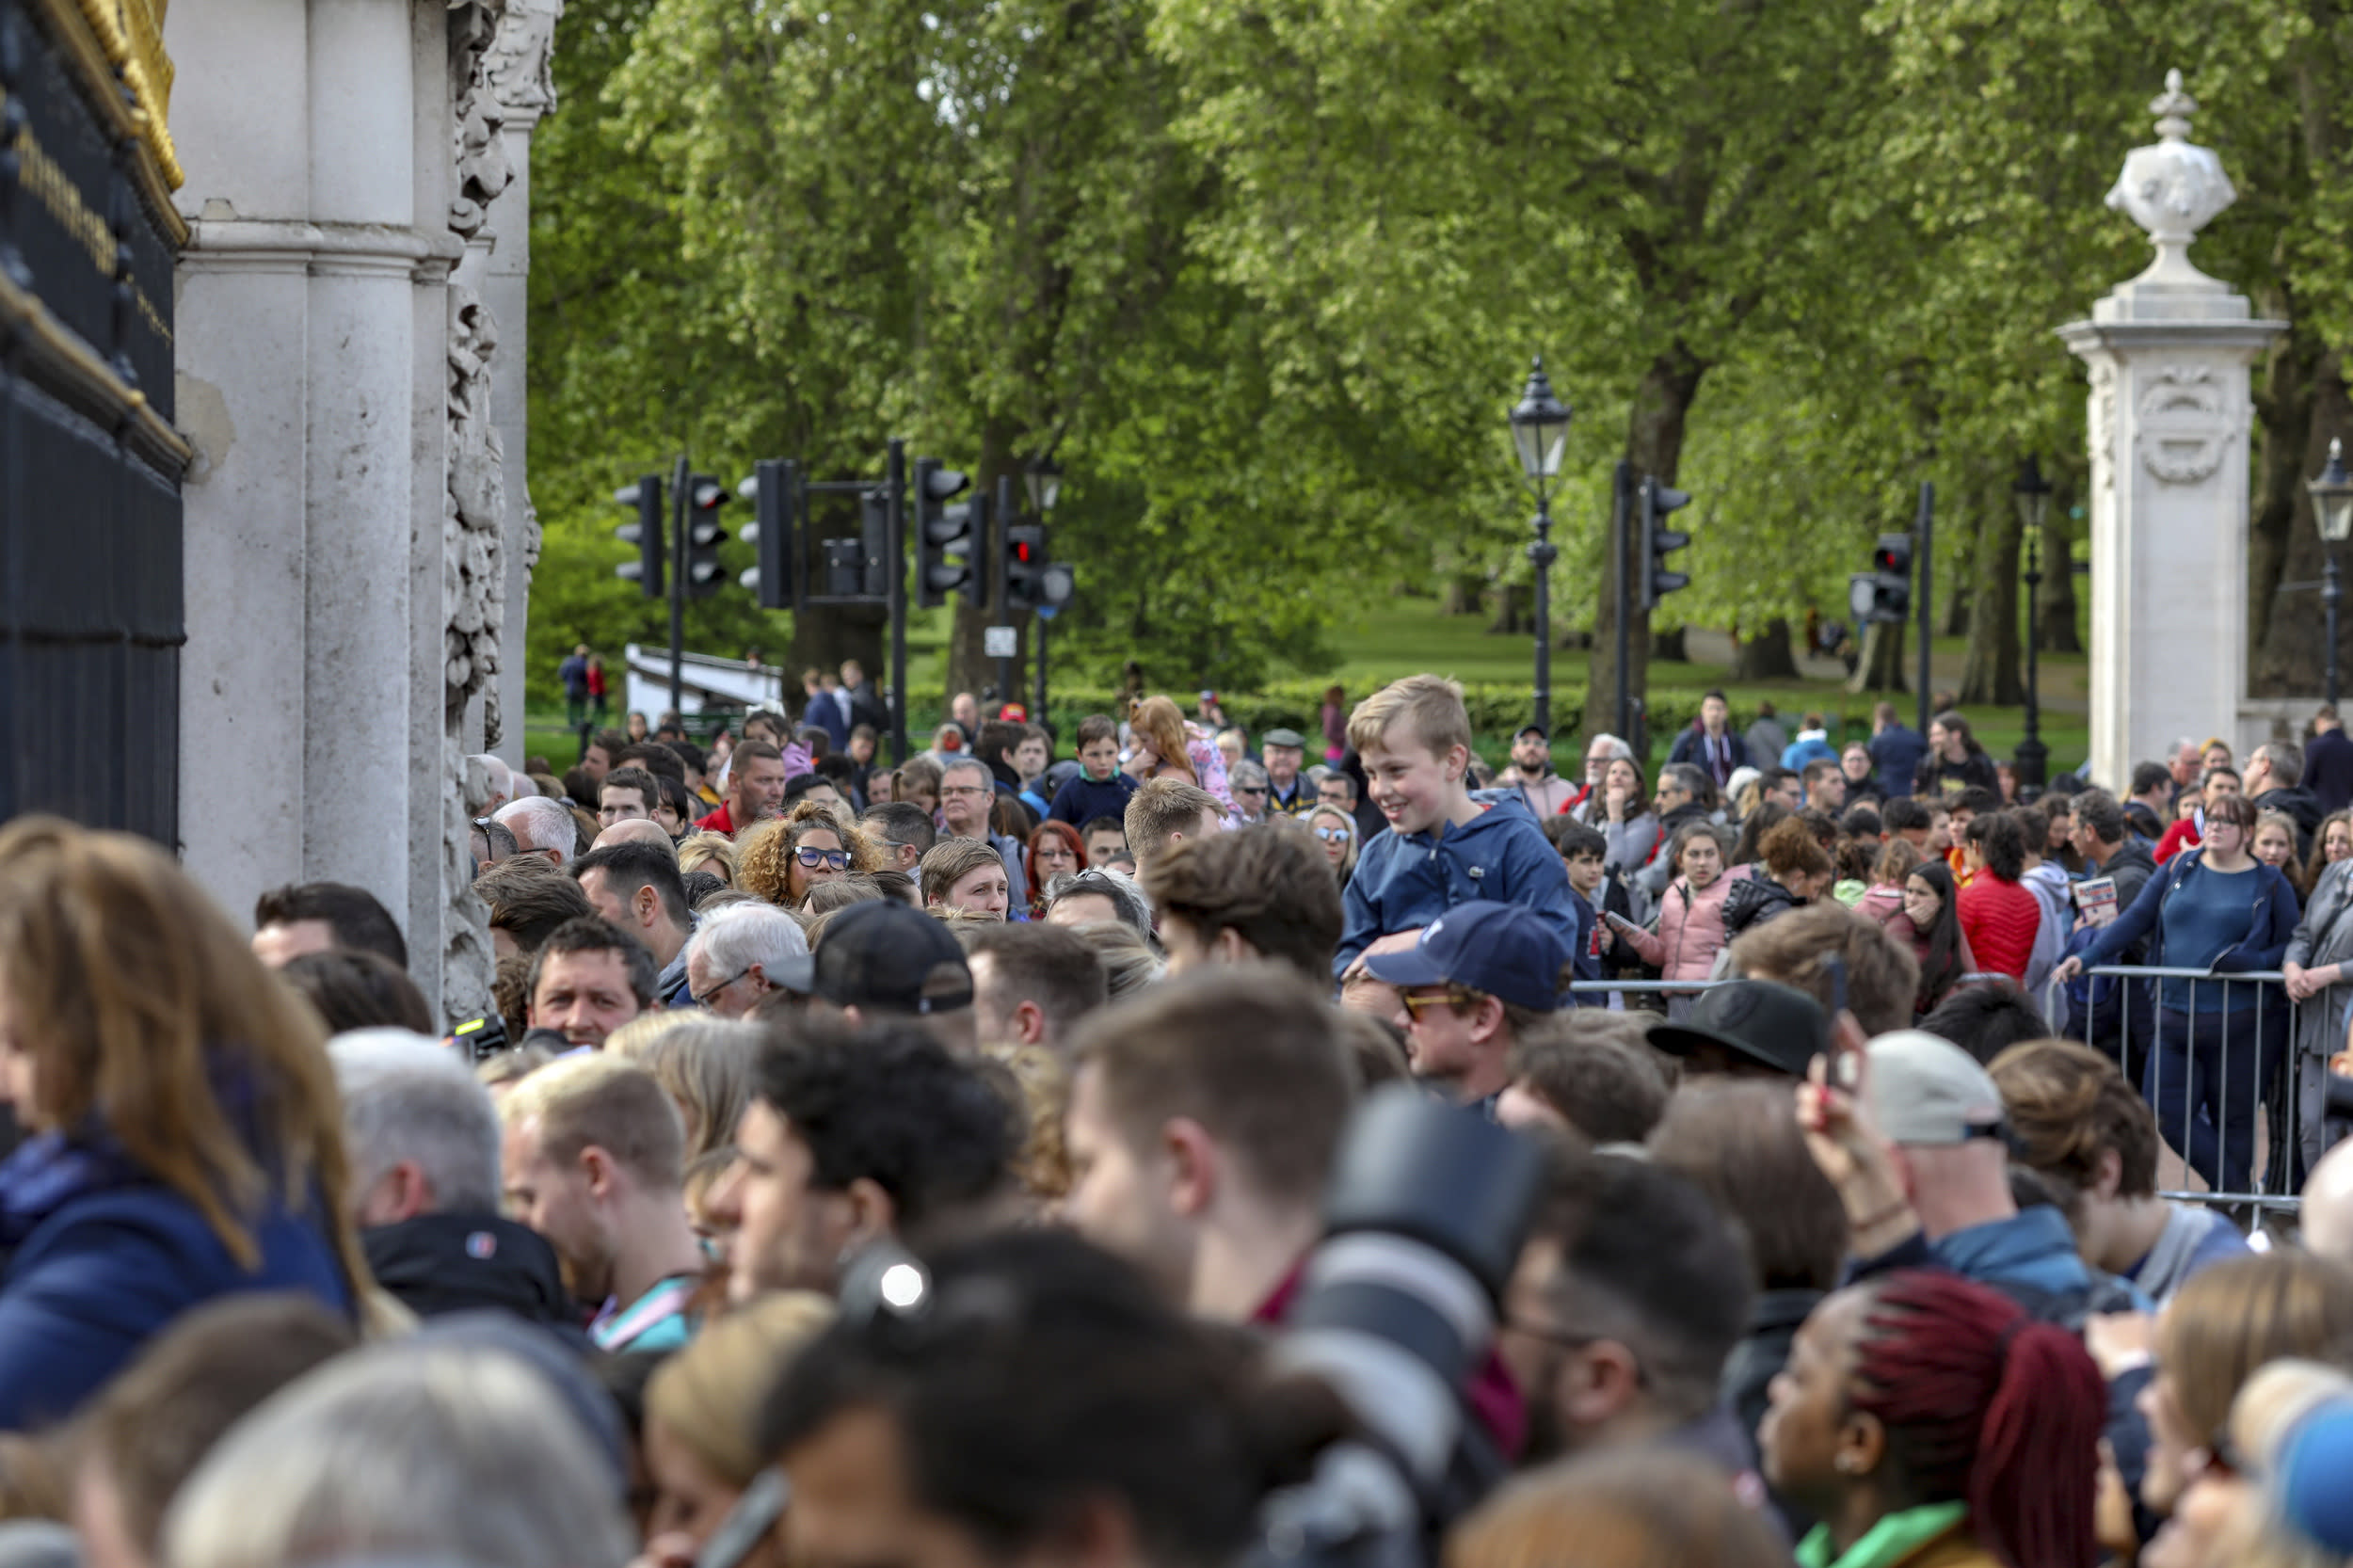 Well wishers gather outside the gates of Buckingham Palace in London, Monday May 6, 2019, after Prince Harry announced that his wife Meghan, Duchess of Sussex, has given birth to a boy.  (AP Photo/Vudi Xhymshiti)